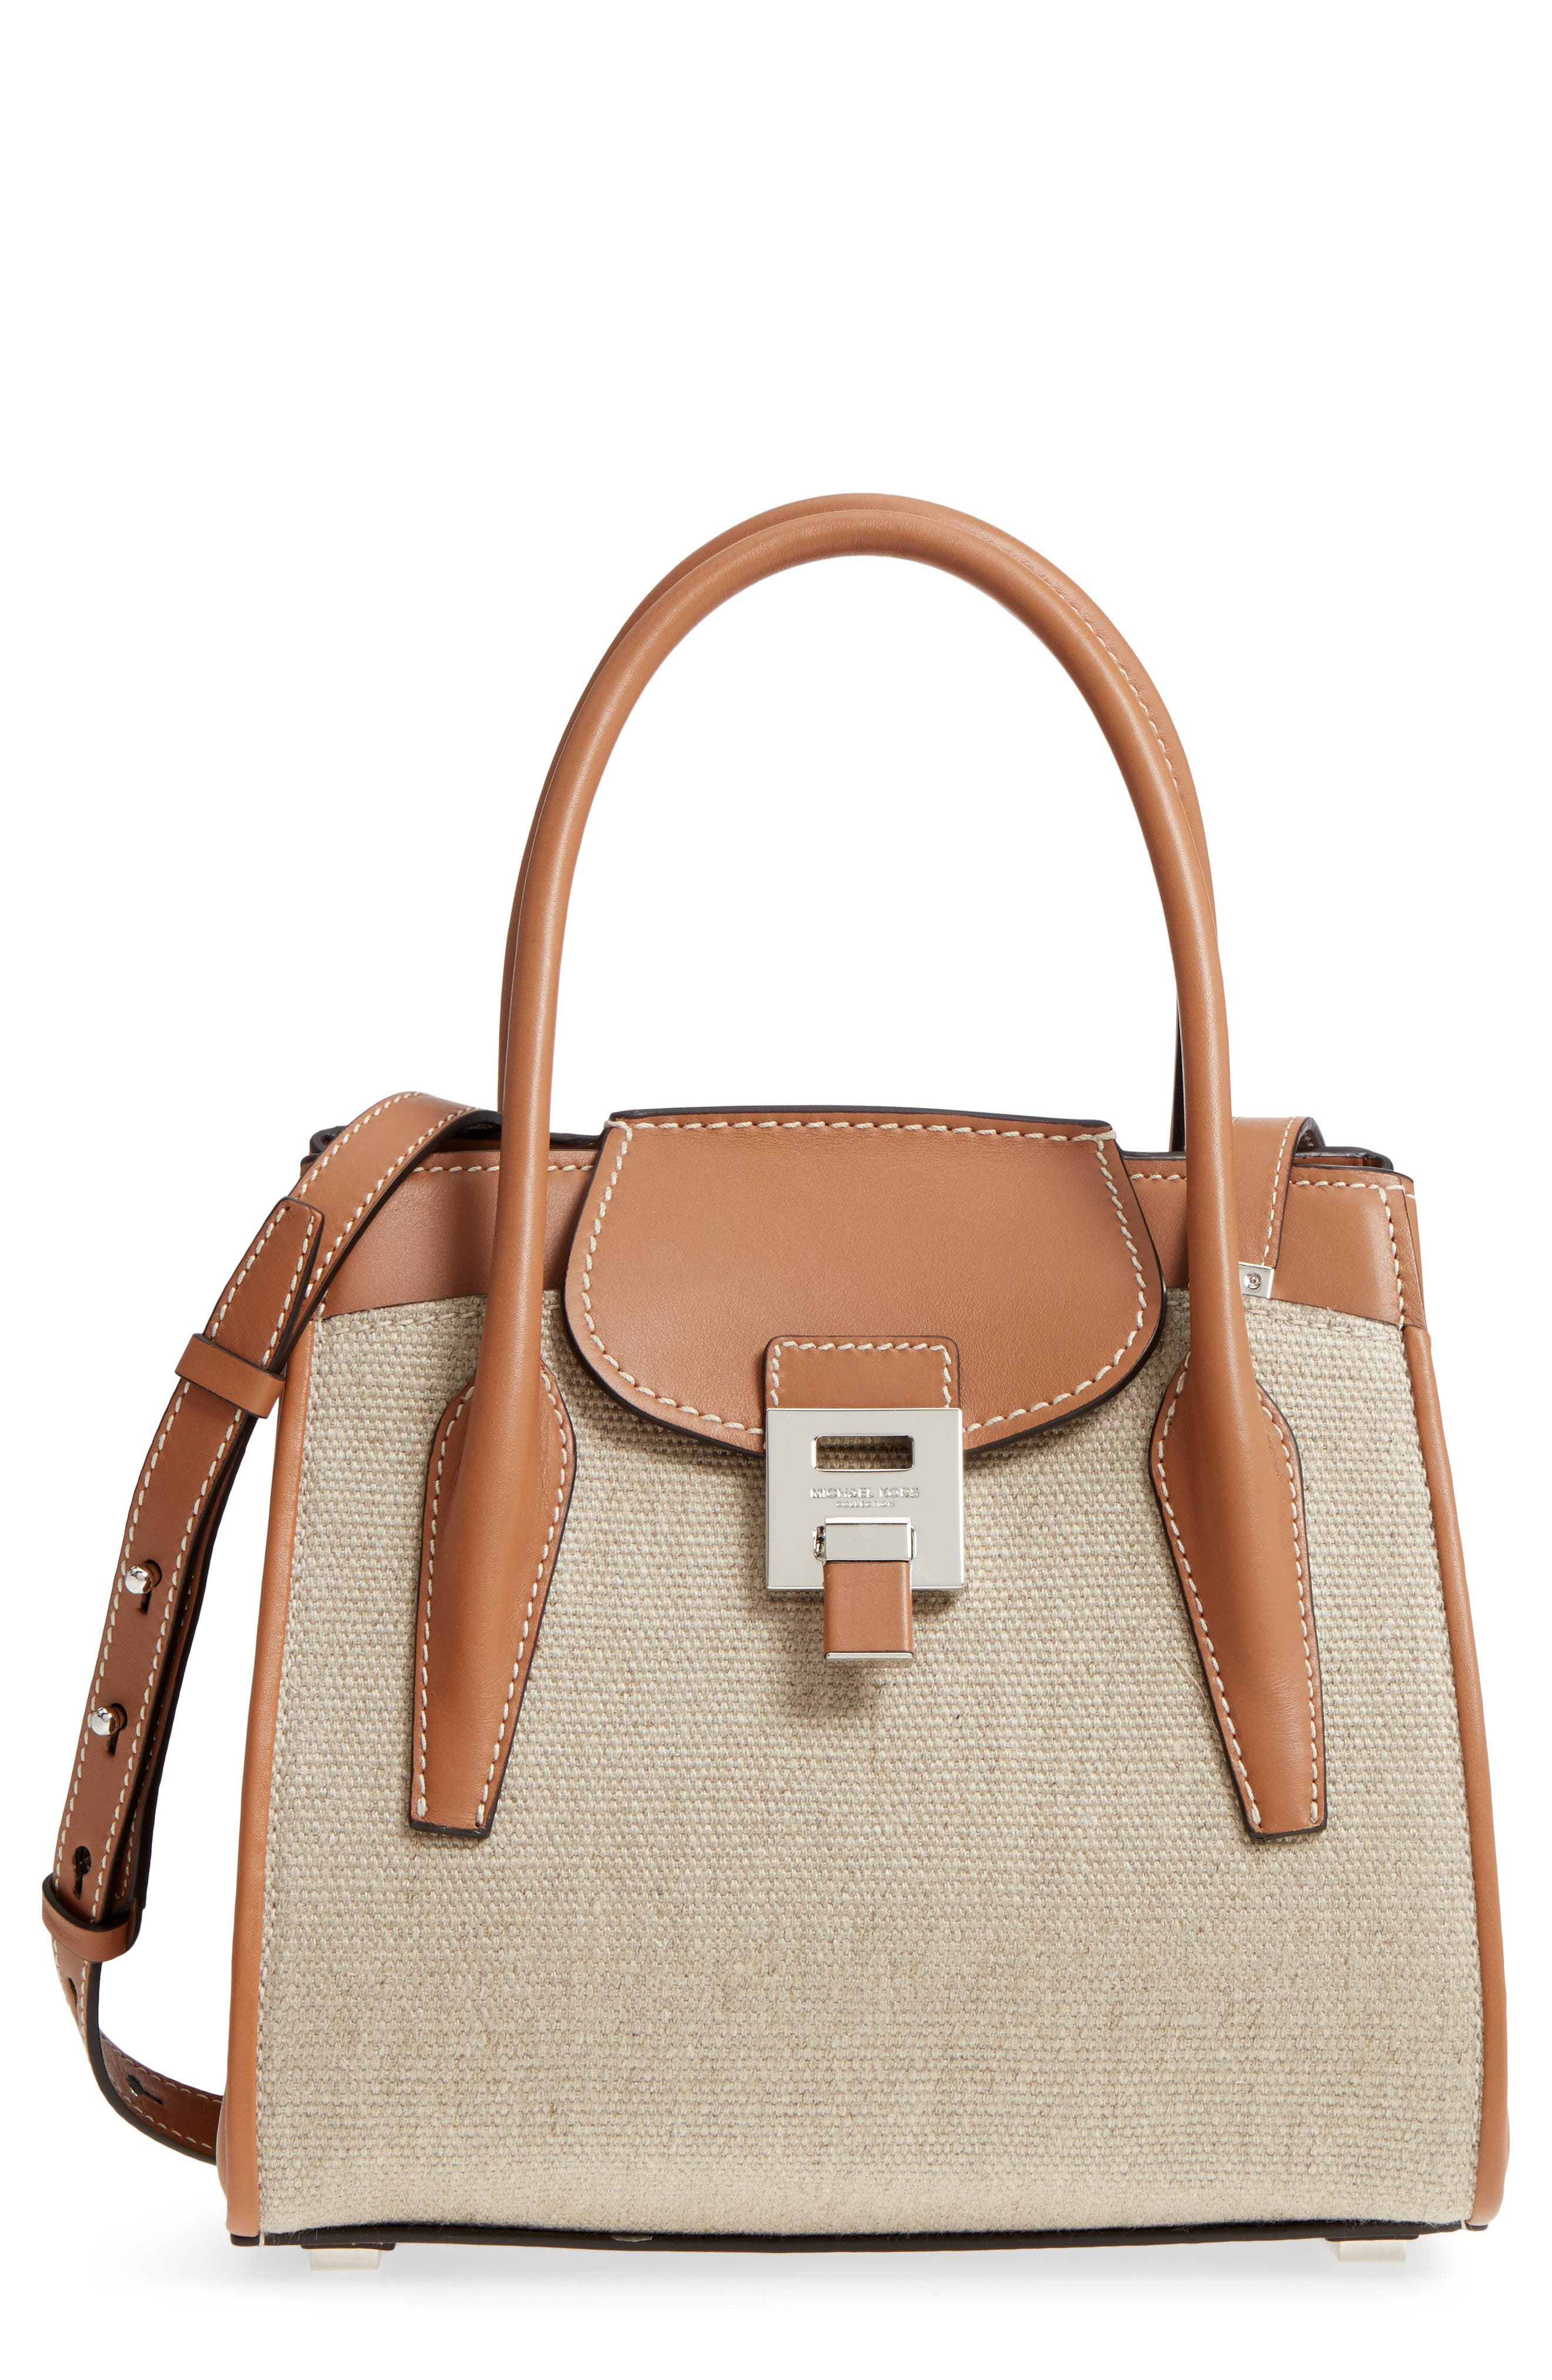 Michael Kors Medium Bancroft Linen Satchel